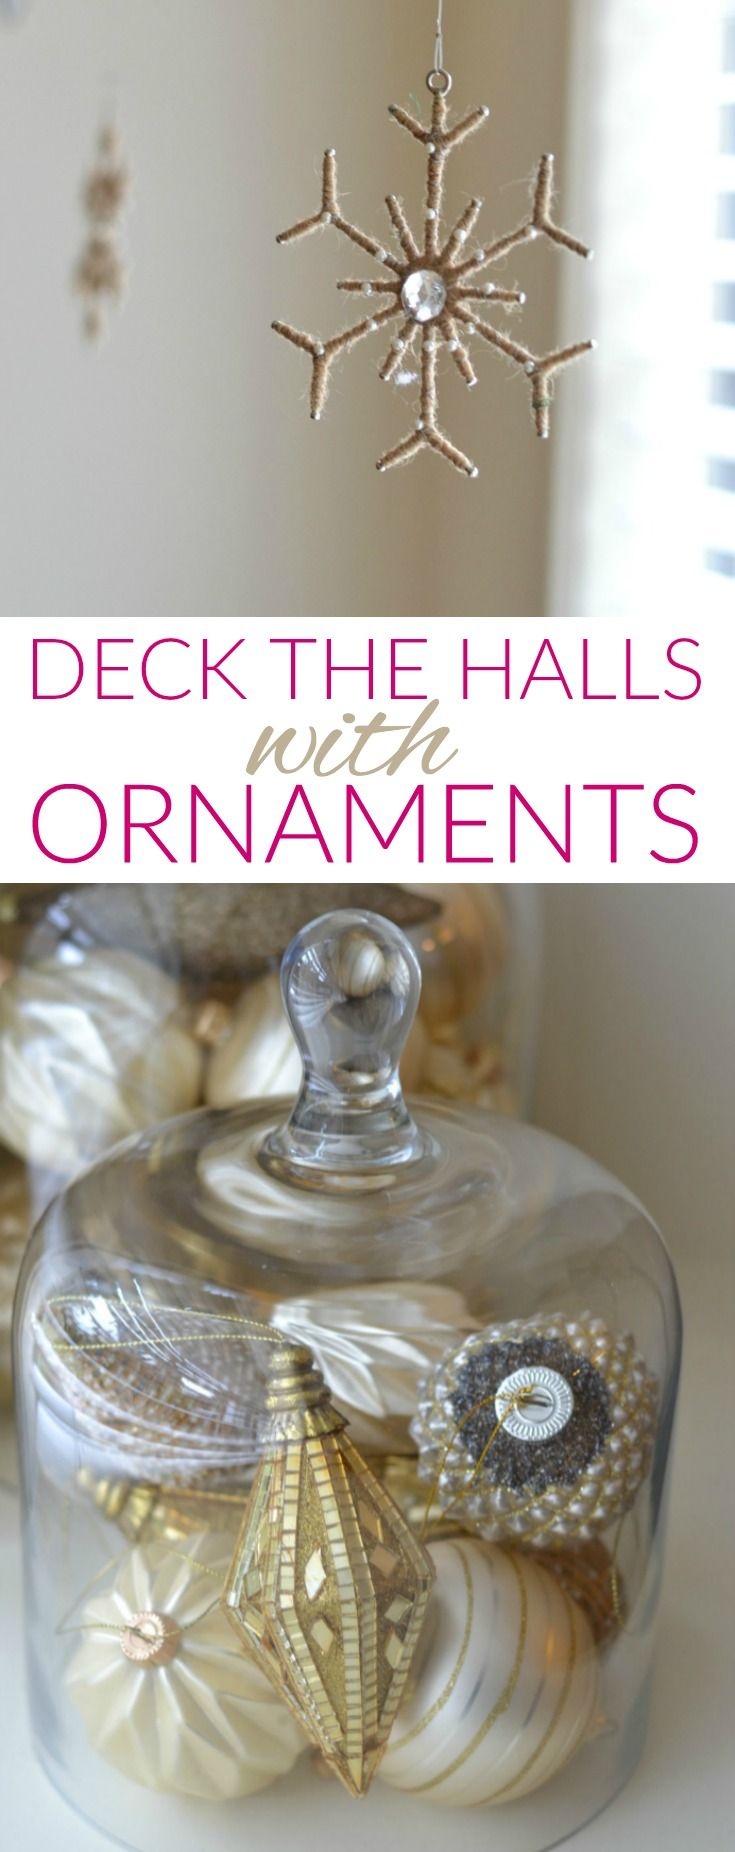 Deck the halls how to decorate on a budget family dollar - Easy Christmas Decorating Ideas Using Ornaments